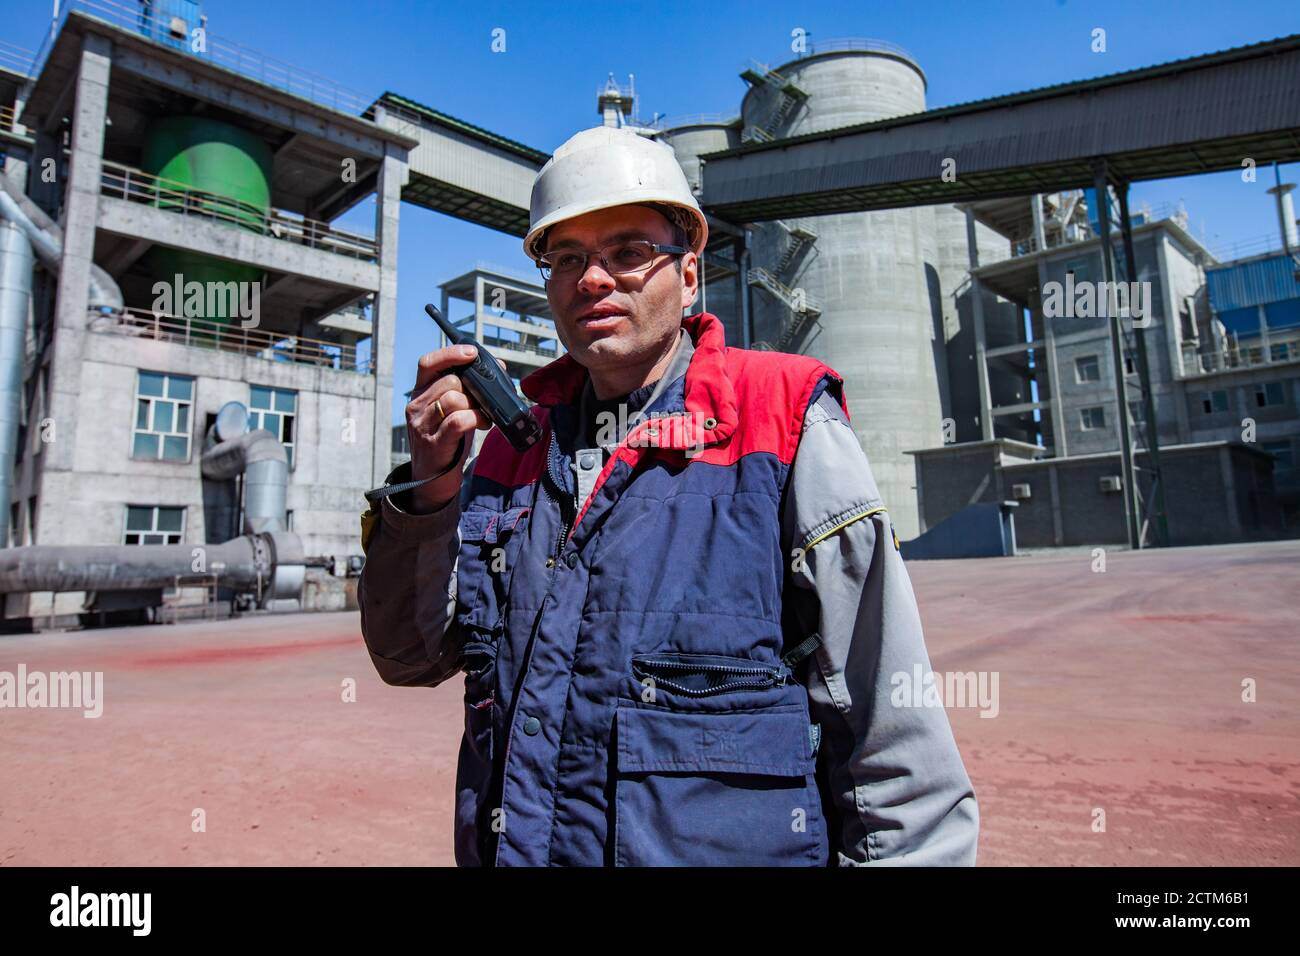 Engineer or worker in white helmet and glasses speaking walkie-talkie. On blurred grey Jambyl Cement plant silos and industrial buildings background. Stock Photo